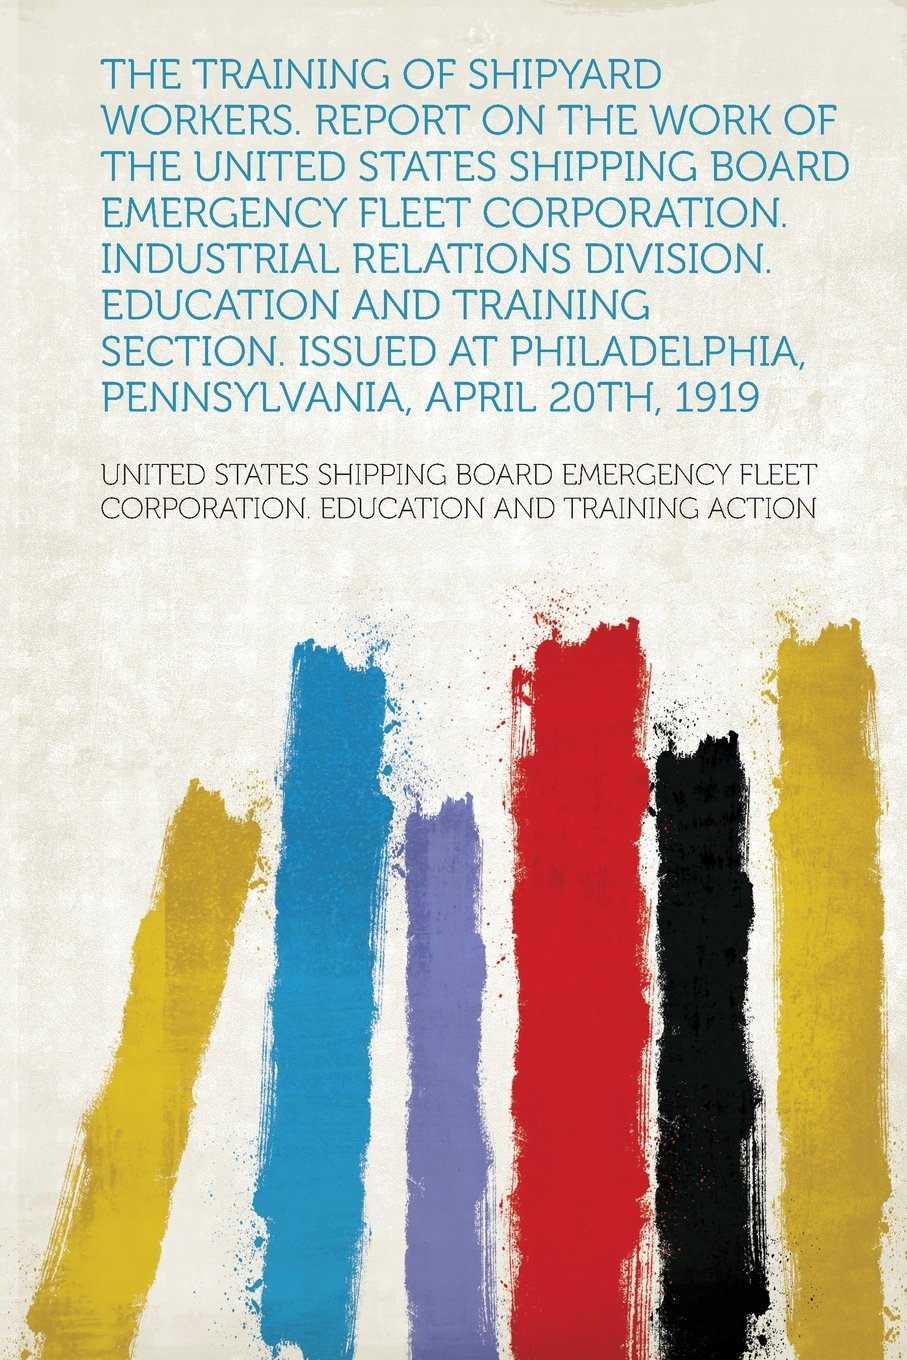 The Training of Shipyard Workers. Report on the Work of the United States Shipping Board Emergency Fleet Corporation. Industrial Relations Division. ... Philadelphia, Pennsylvania, April 20Th, 1919 pdf